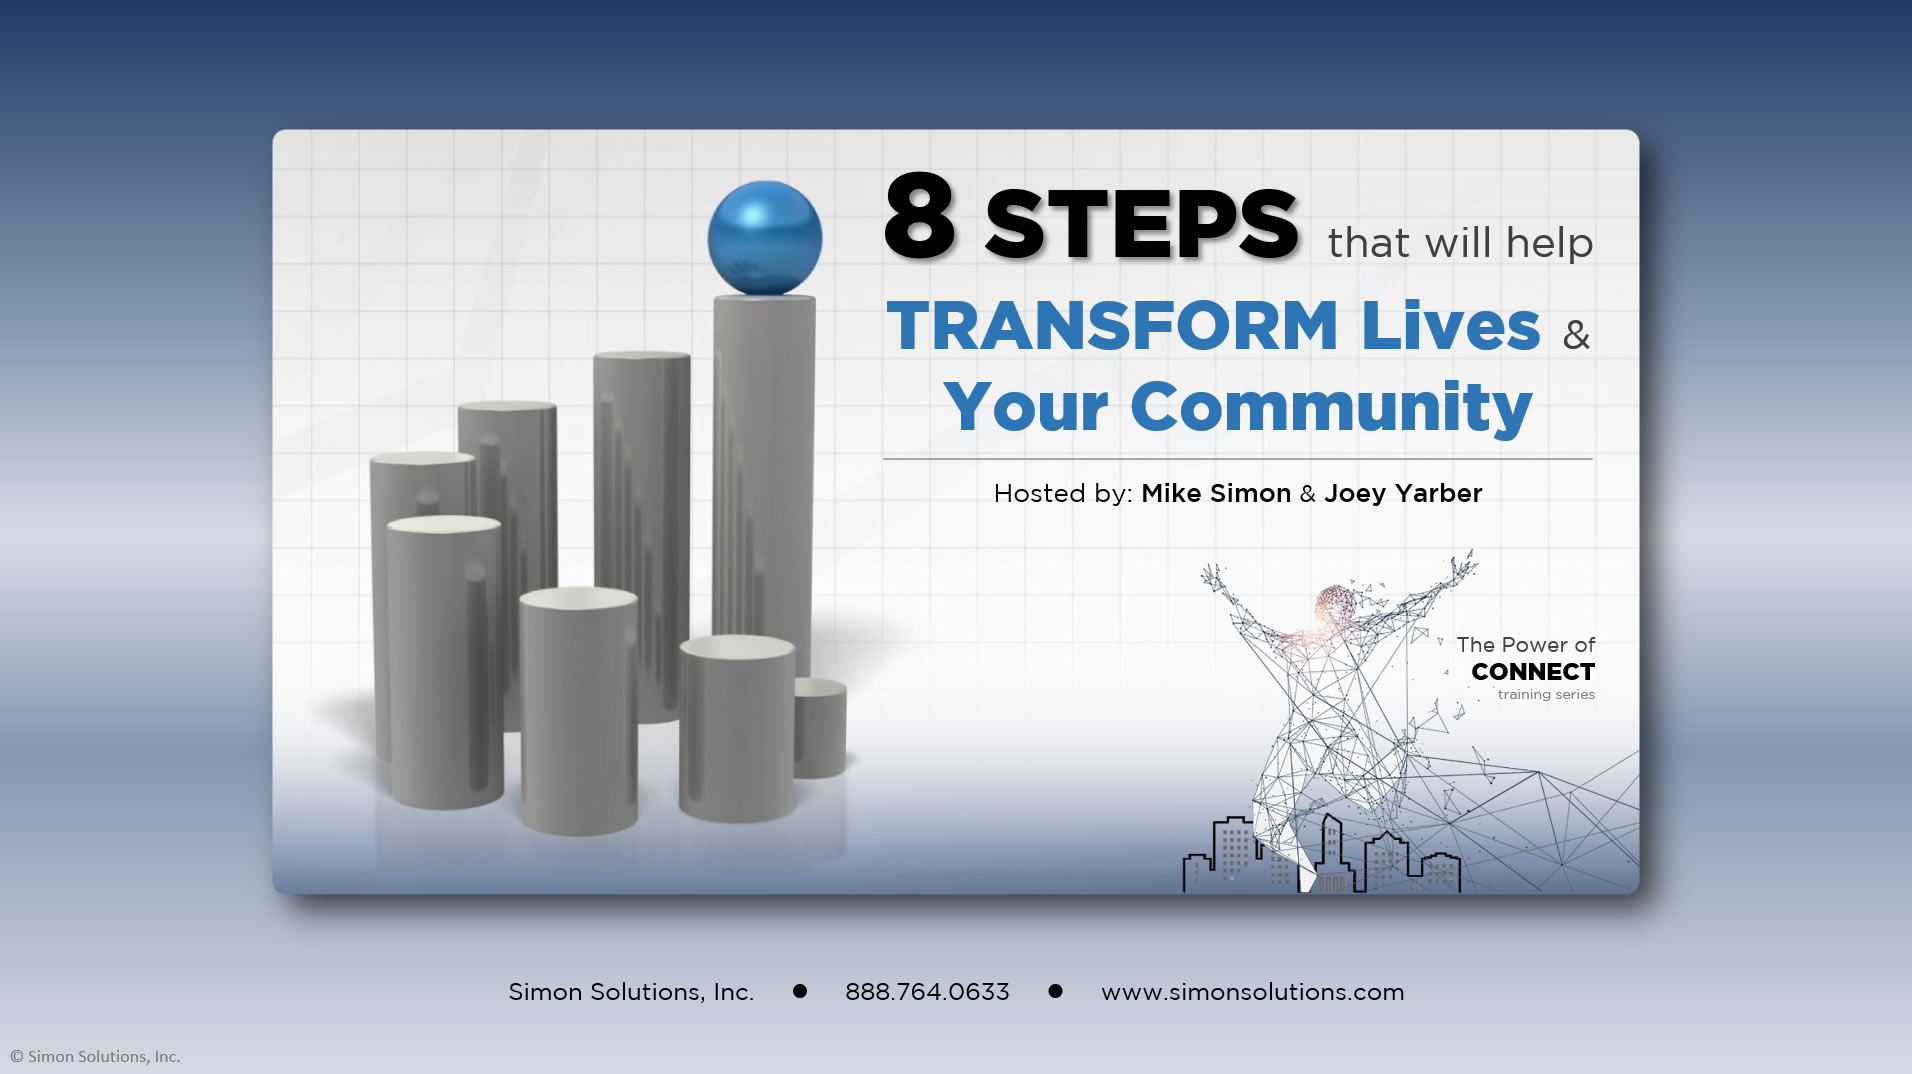 8 Steps that will help Transform Lives & Your Community